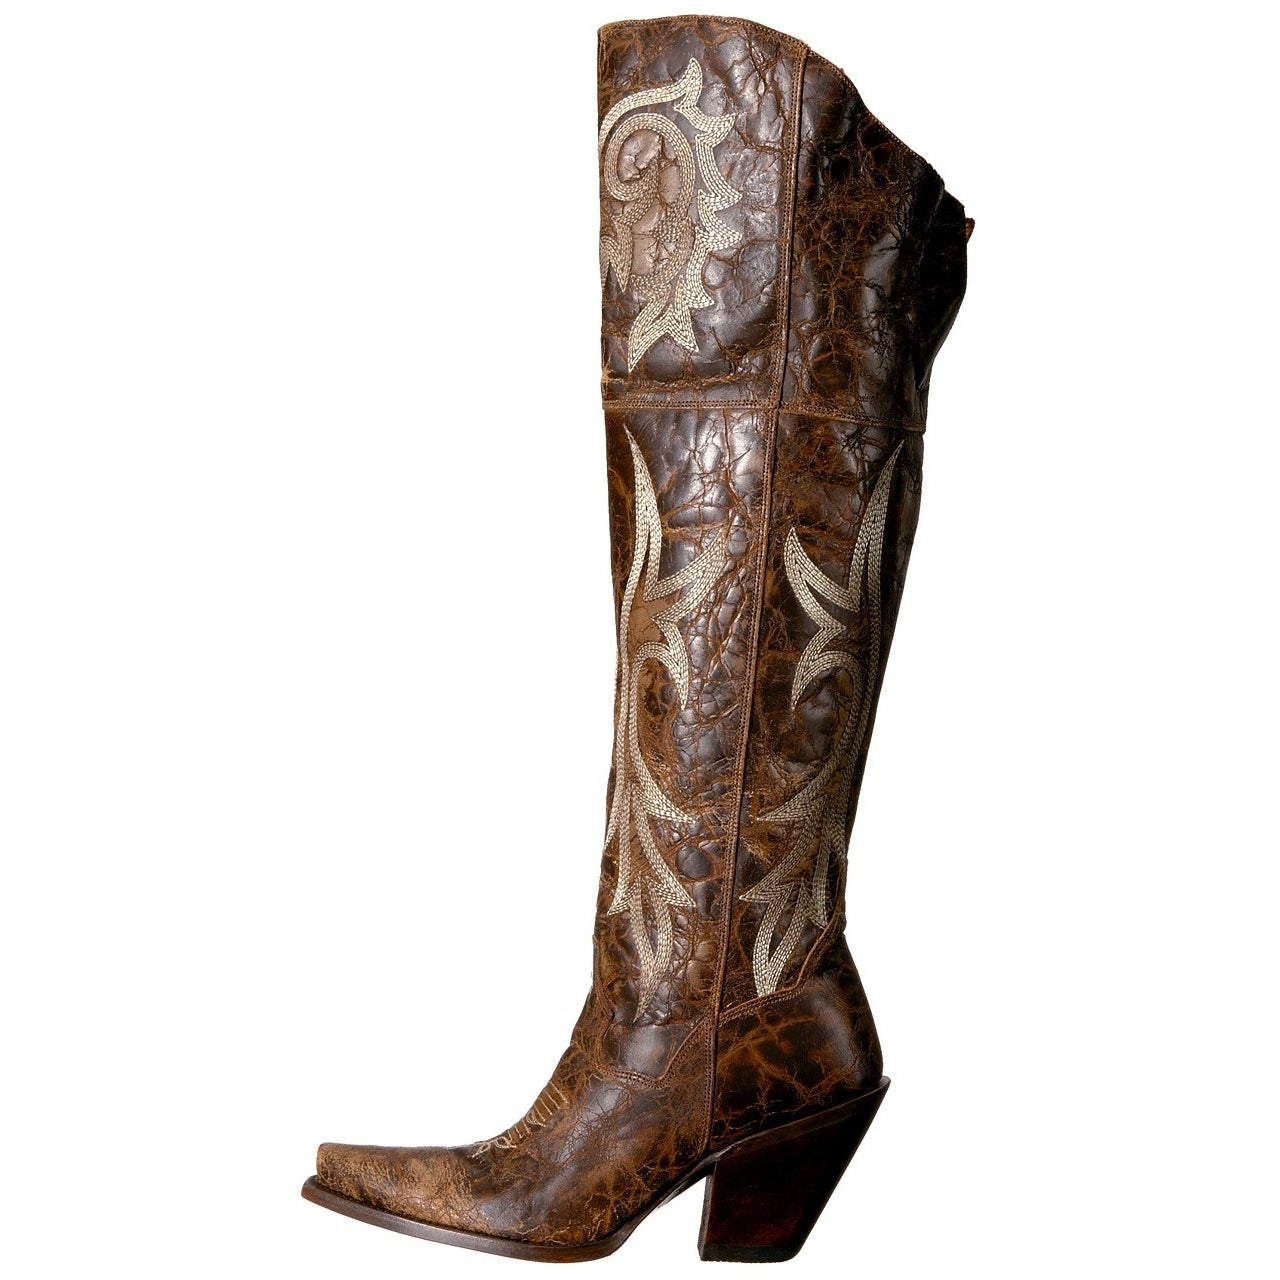 d6526ee8154 ... Women s Dan Post Jilted Over Knee Boots Snip Toe Handcrafted -  yeehawcowboy ...